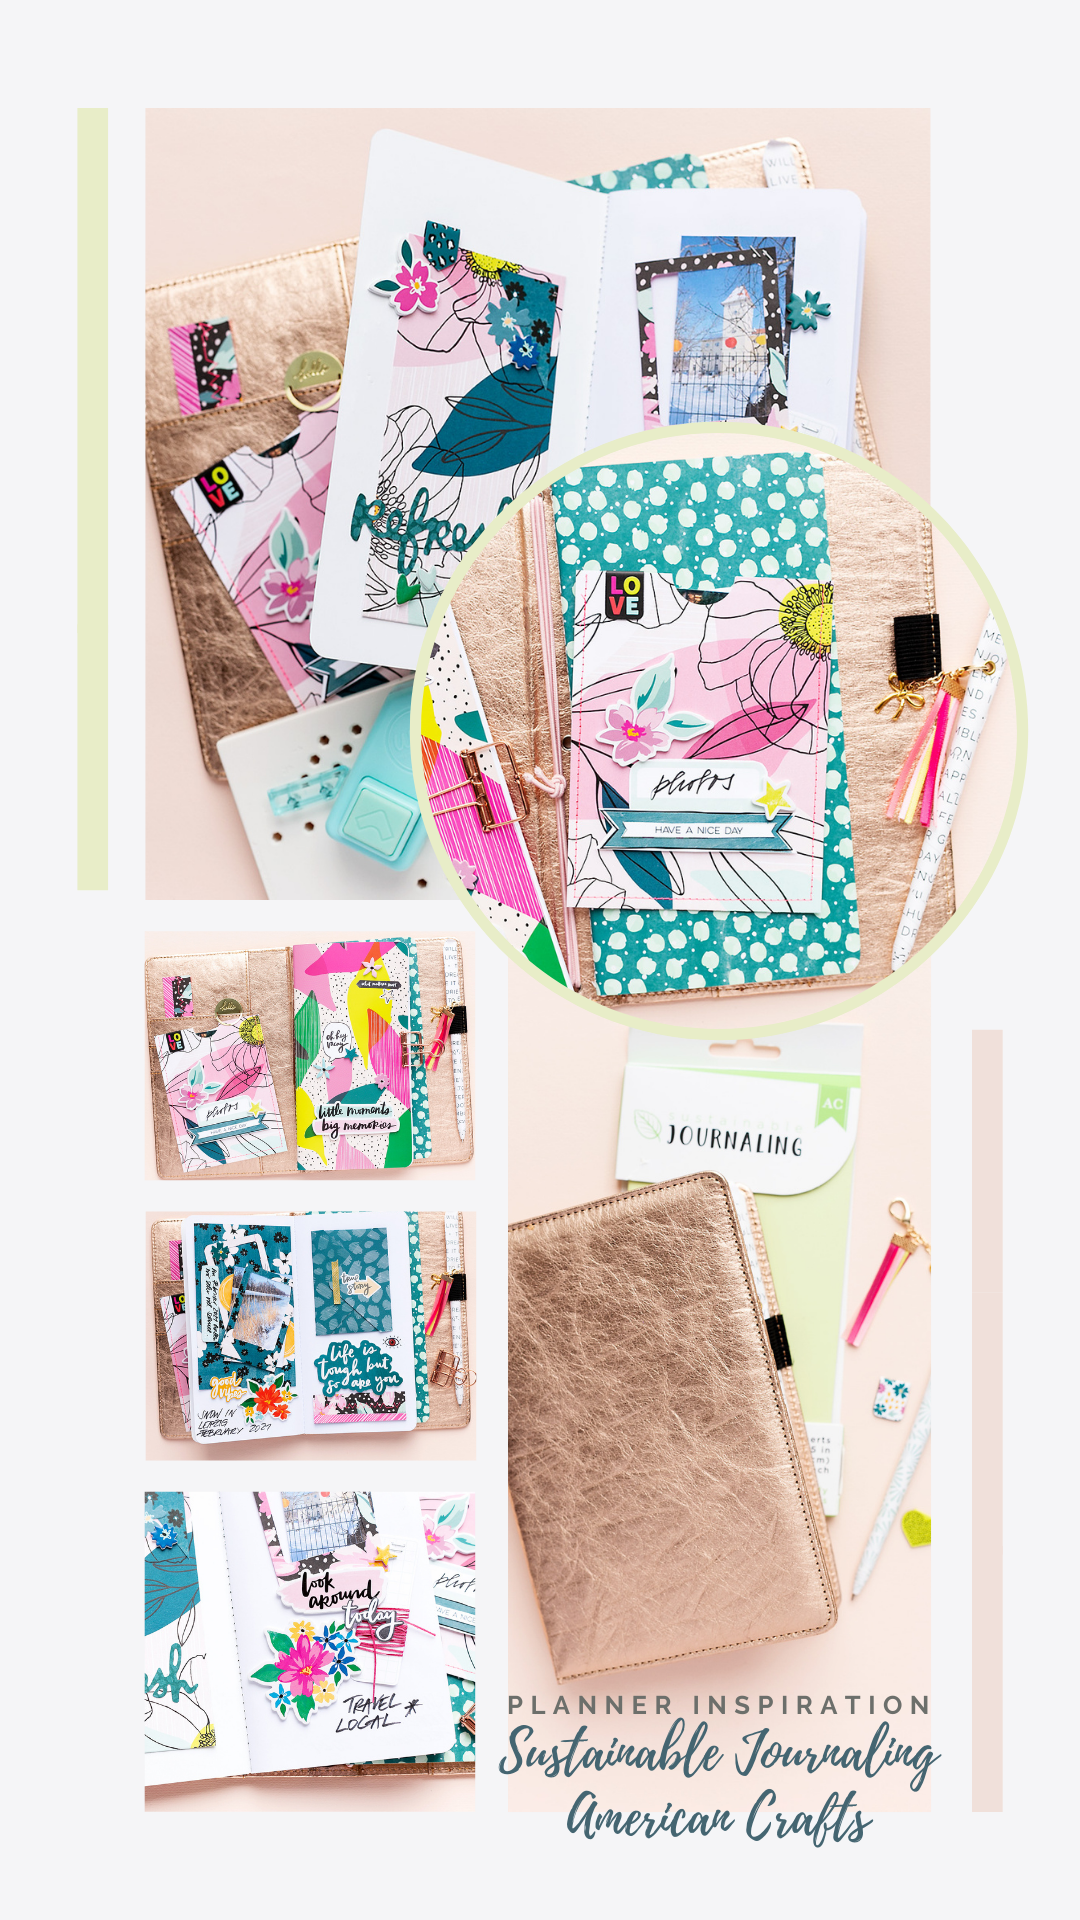 Create a #planner spread with American Crafts Sustainable Journaling Amy Tangerine